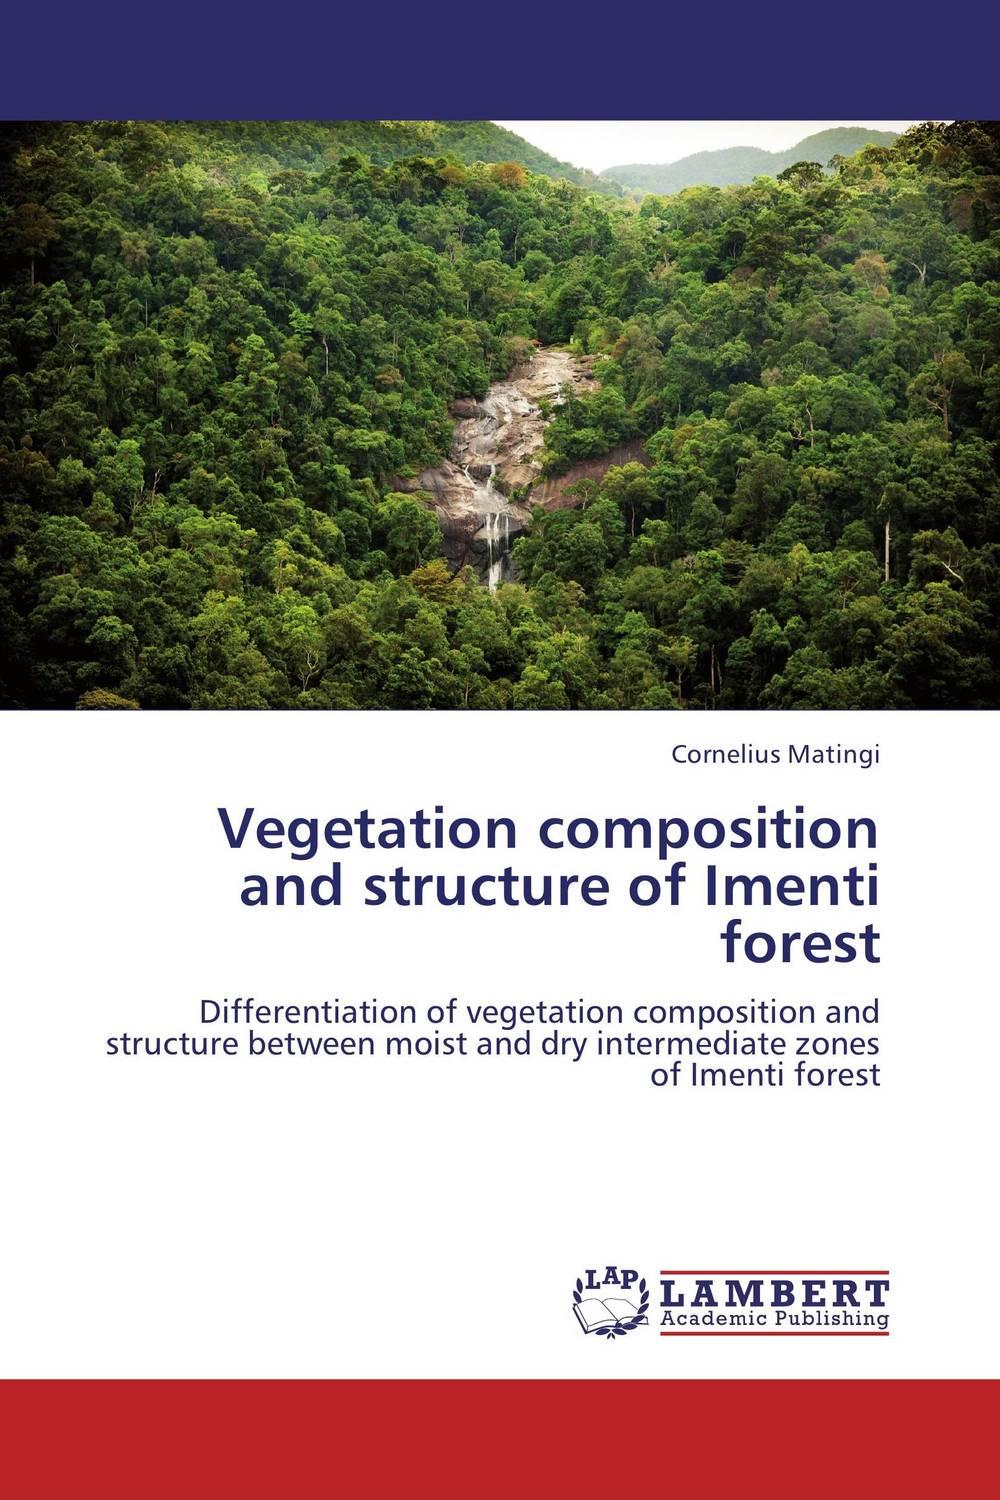 Vegetation composition and structure of Imenti forest vegetation hong 30